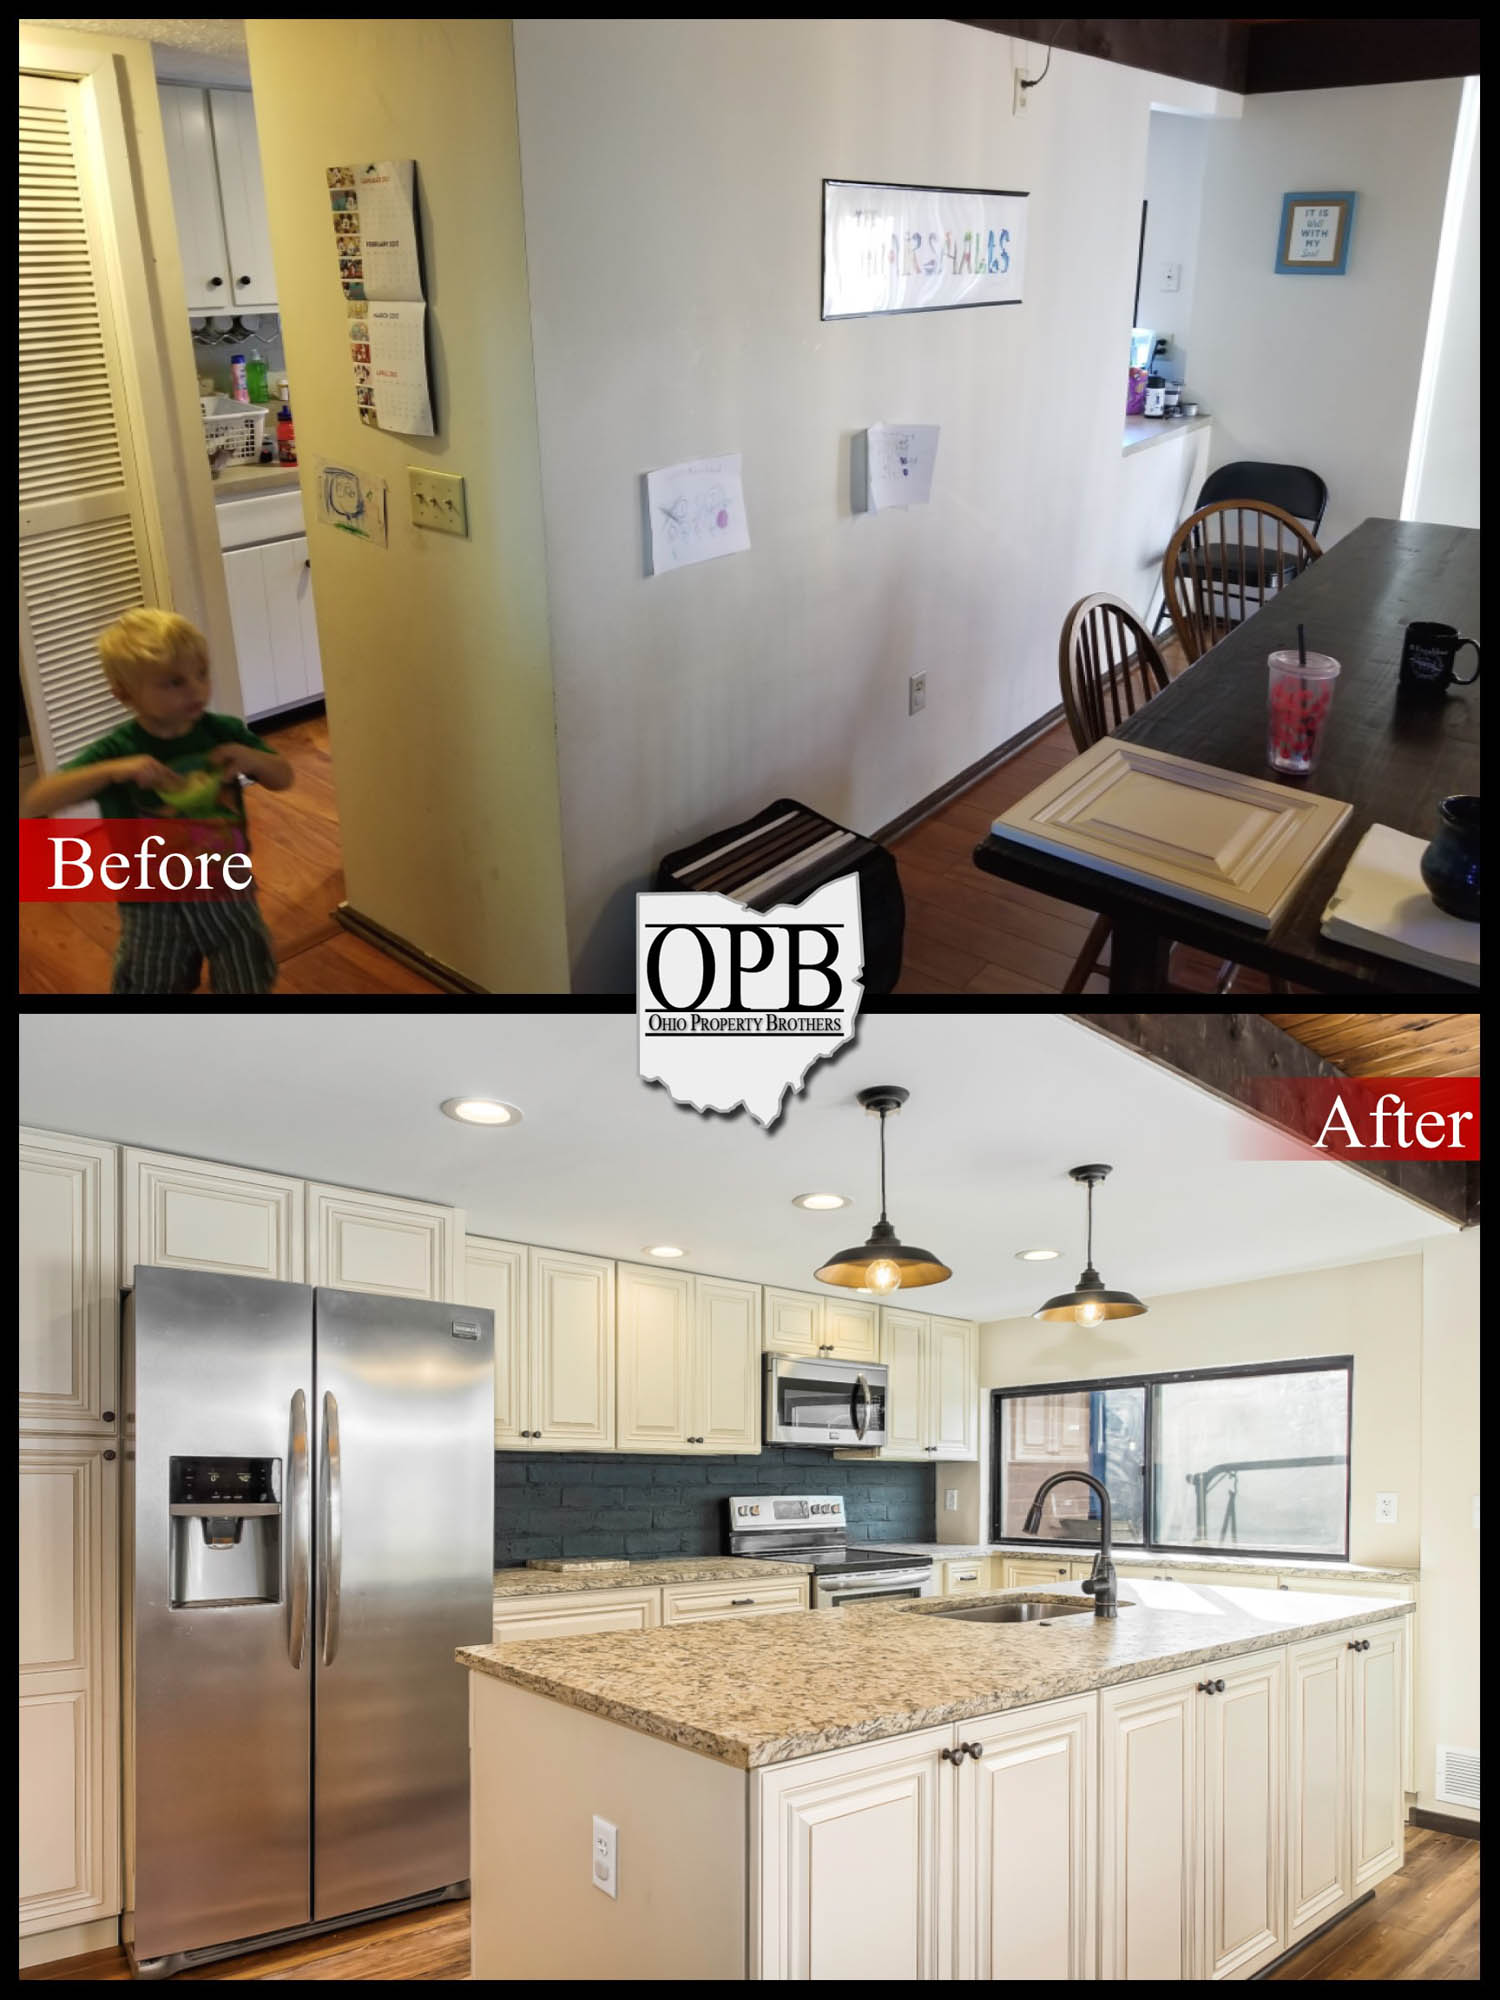 Clintonville Condo Ohio Property Brothers - Property brothers kitchen remodels